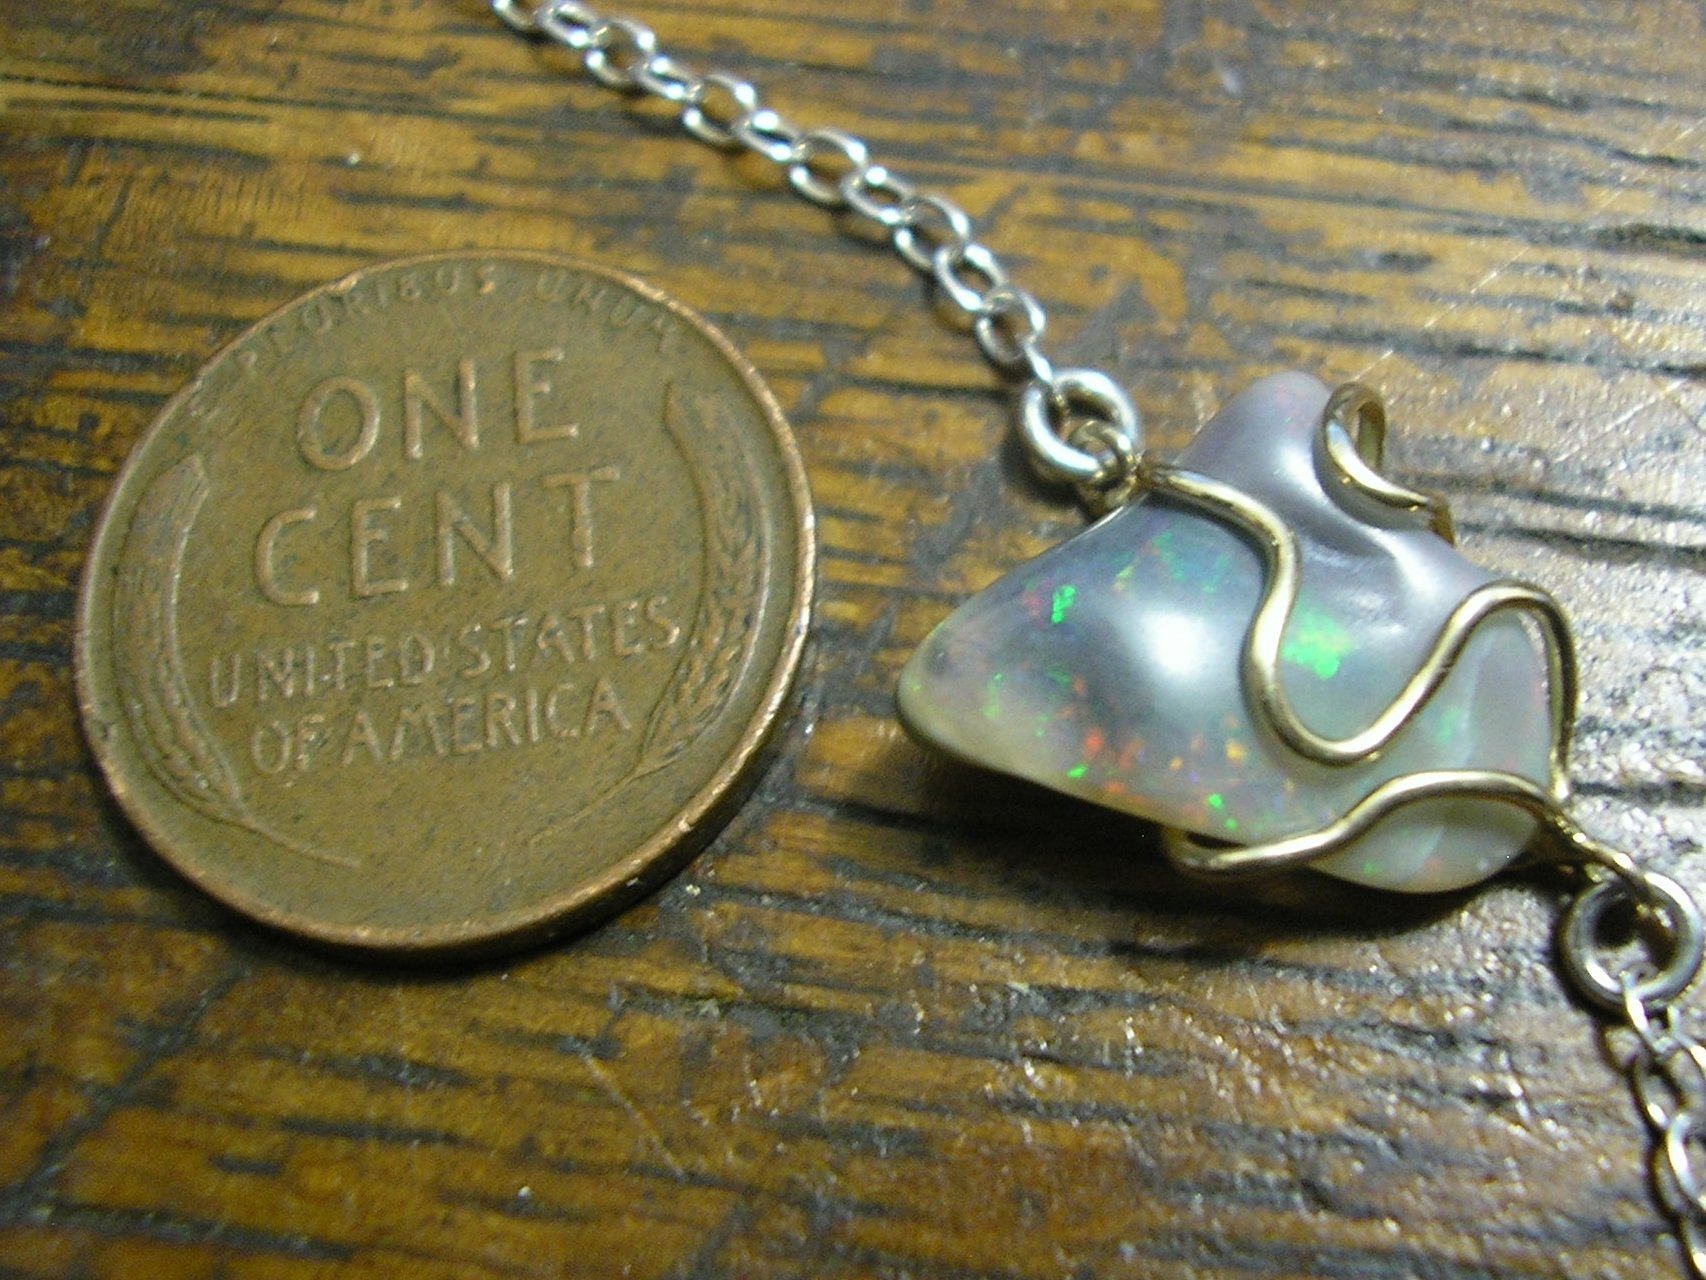 OPAL Necklace, Sterling Silver & 14k Gold, 17.5'' Chain, Natural Crystal, Australian Opal Nugget